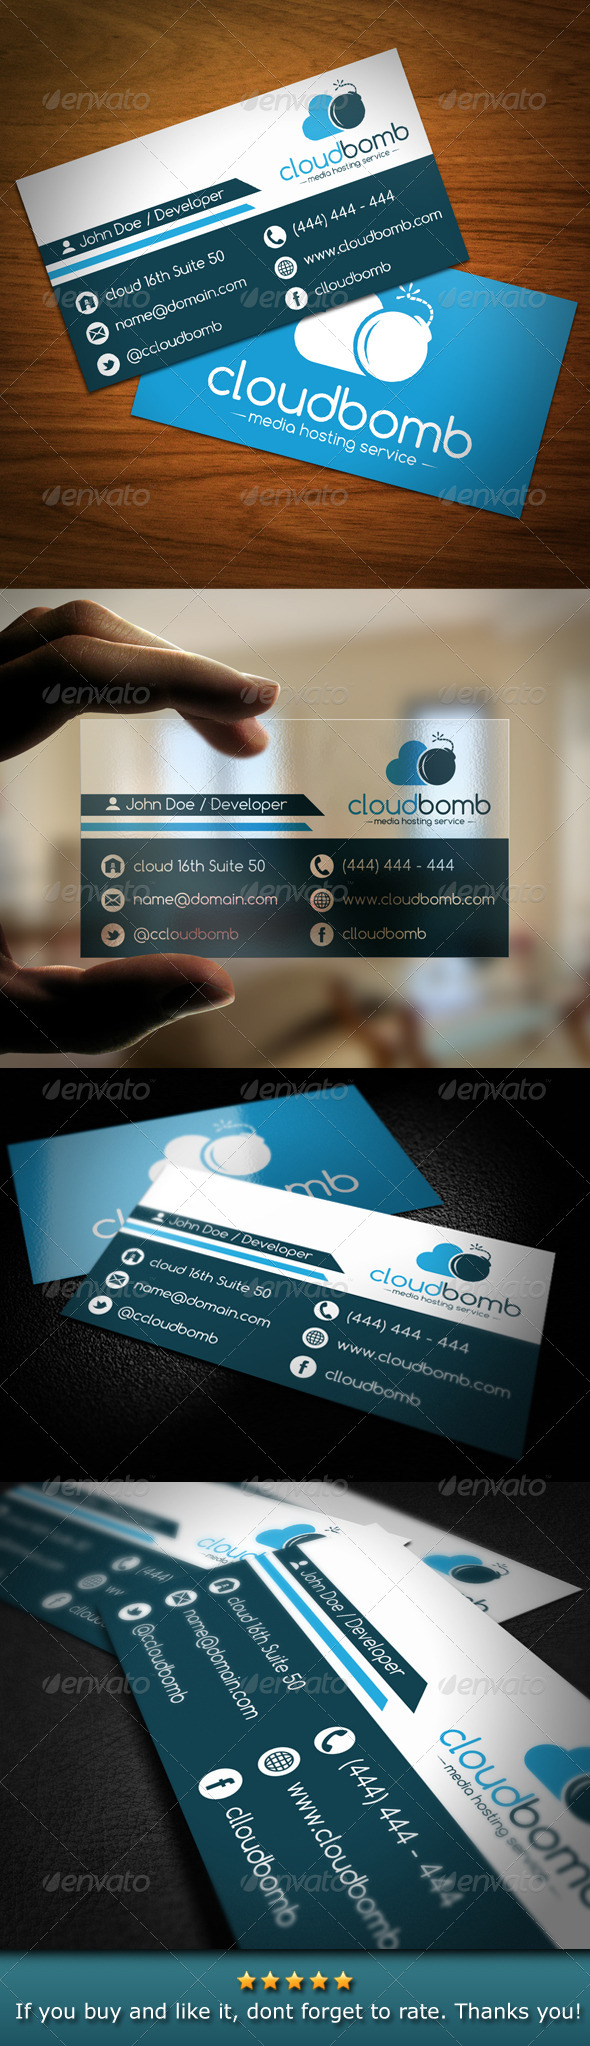 Media Cloud Bomb Business Card - Creative Business Cards